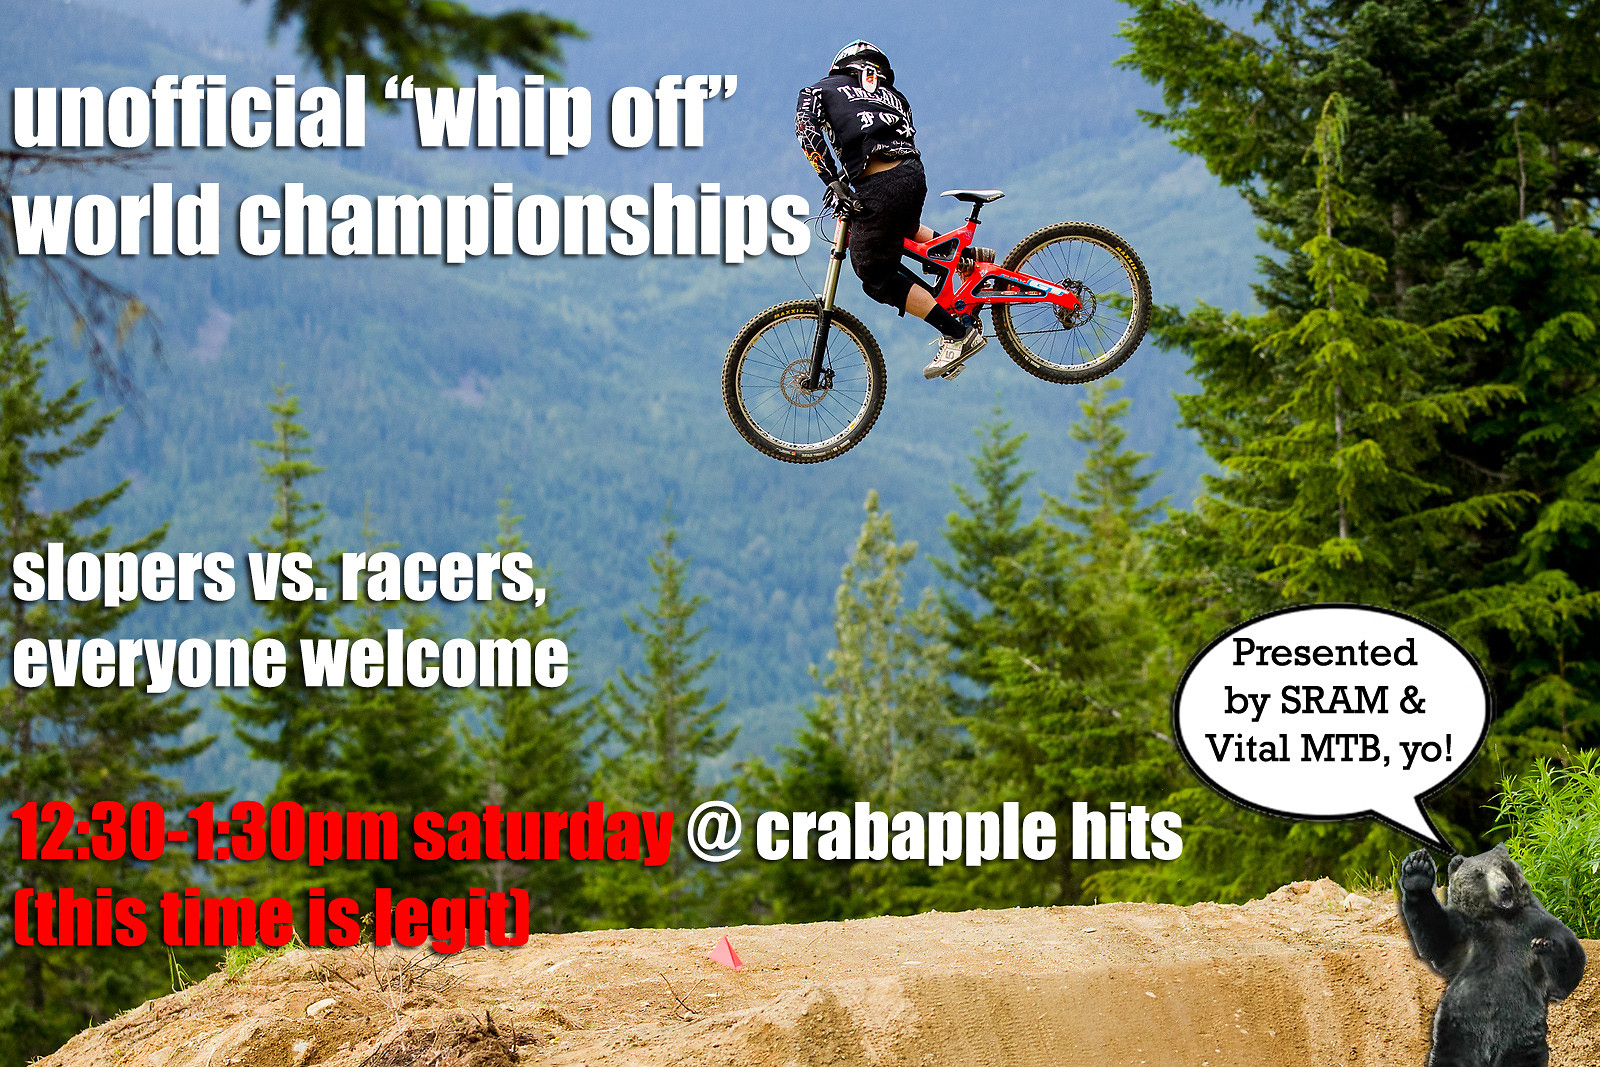 """Unofficial Whip Off World Champs - Saturday @ Crabapple Hits - Unofficial """"Whip Off"""" World Championships - Mountain Biking Pictures - Vital MTB"""